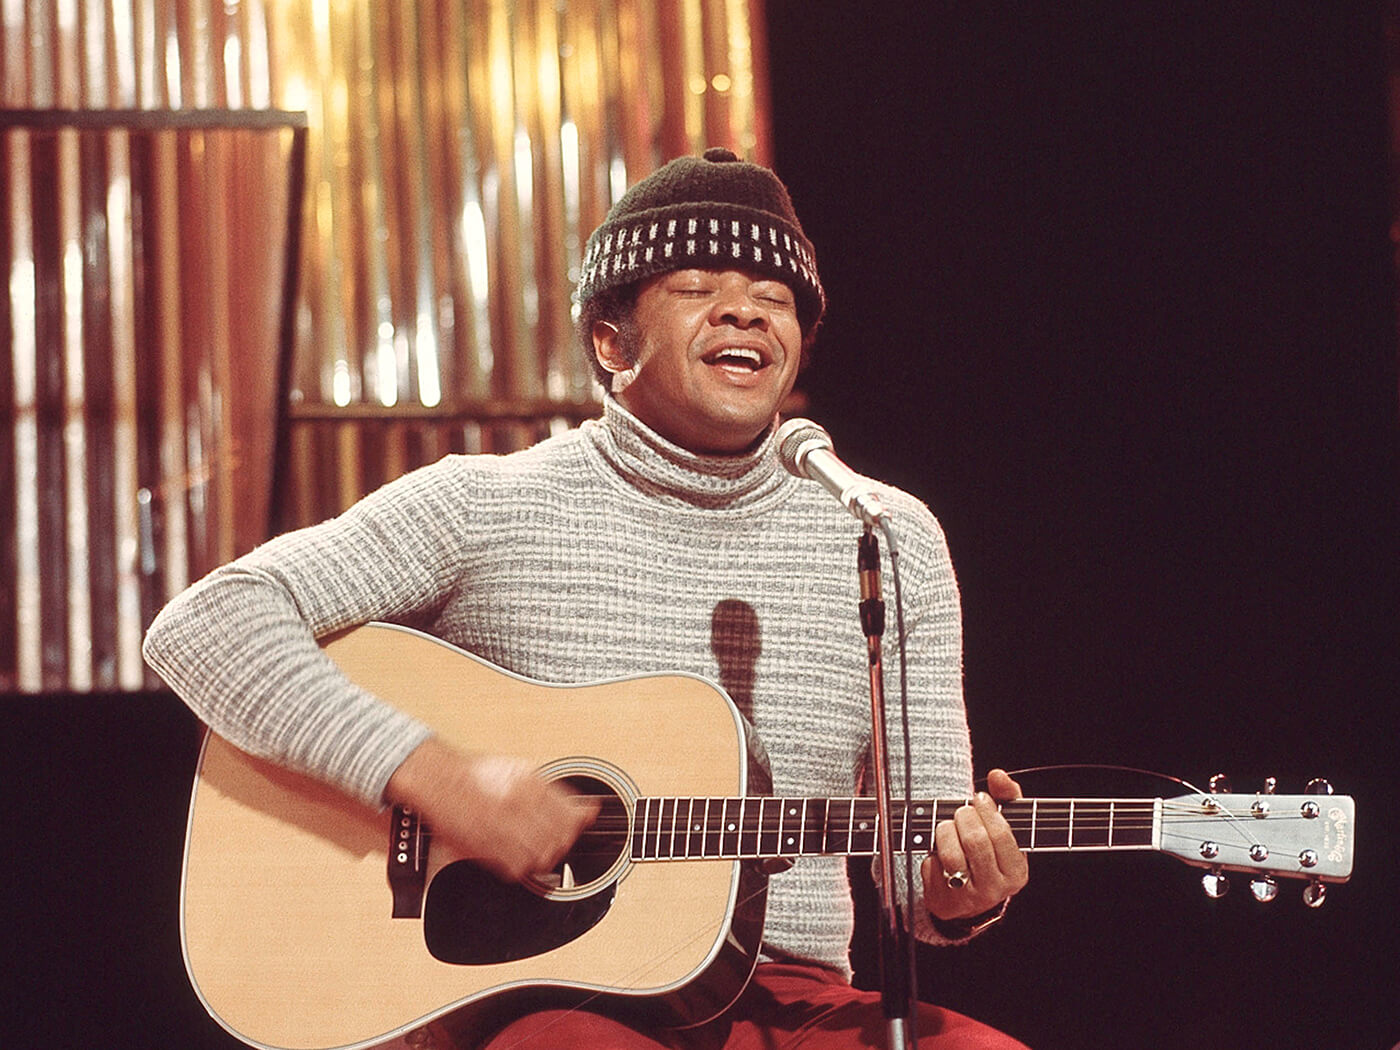 Bill Withers has died, aged 81